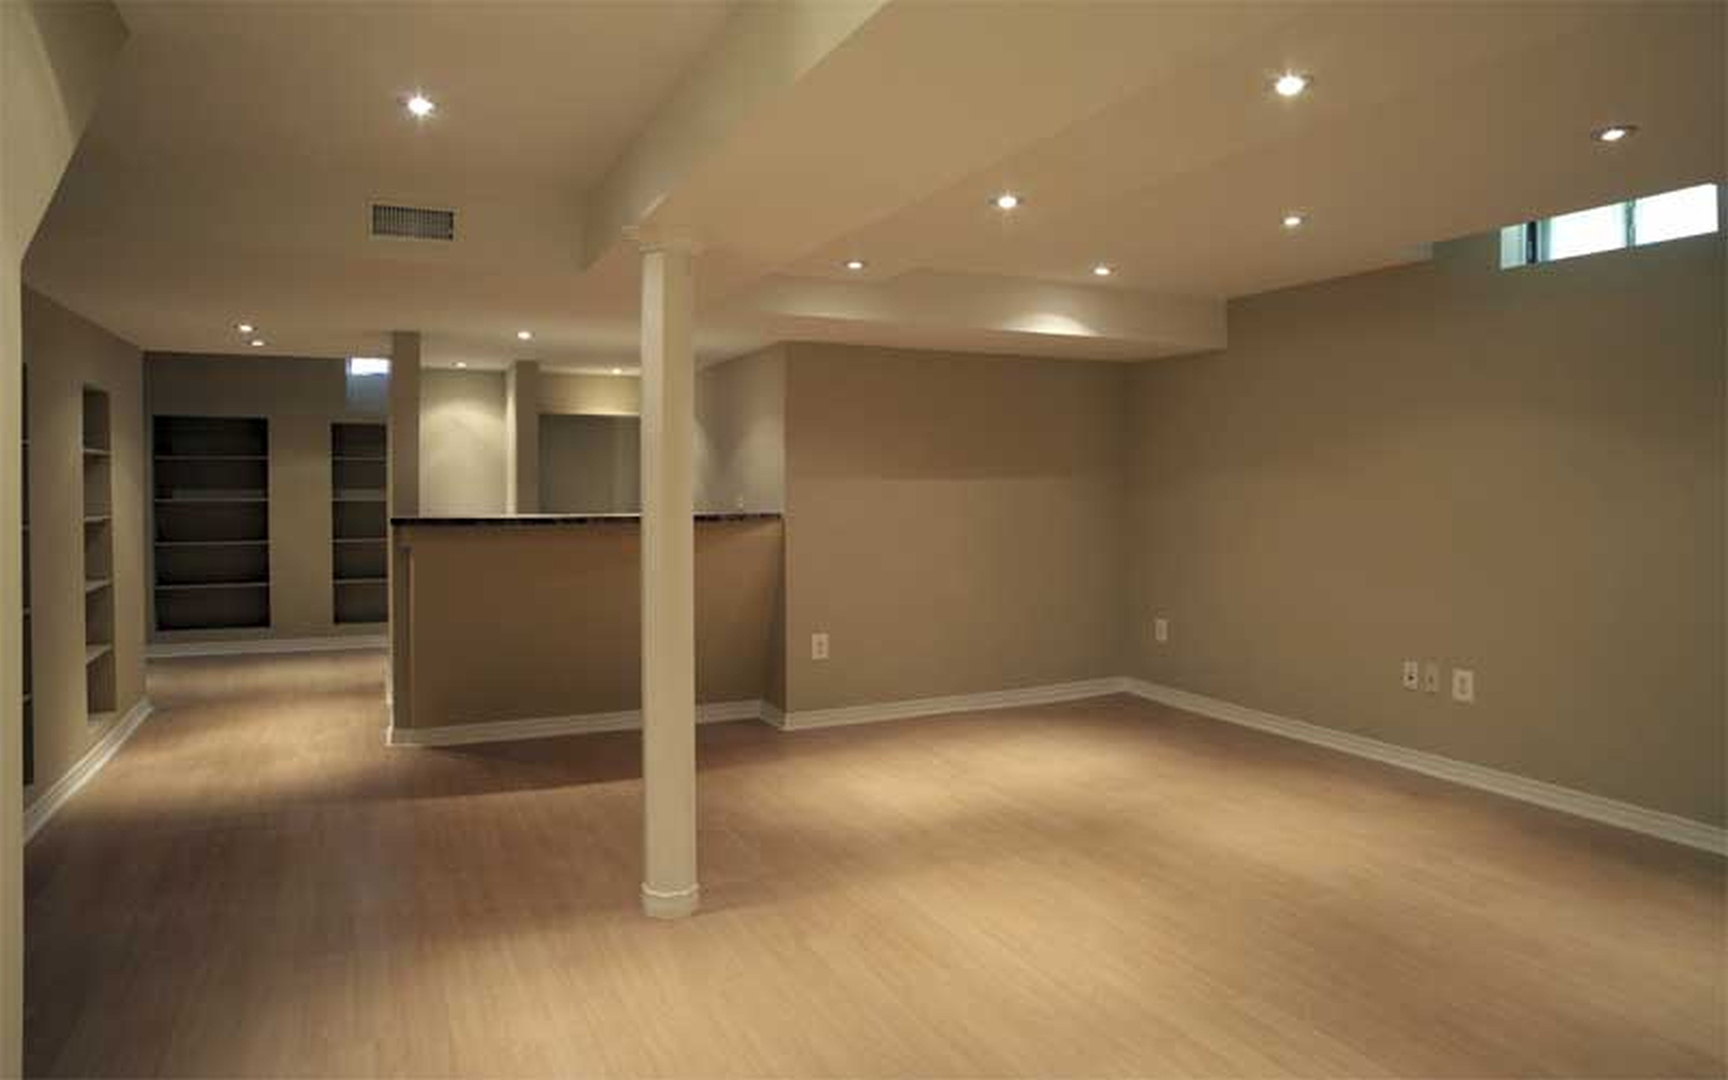 Basement Remodeling Basement Remodeling & Finishing Contractor Orange Nj 07050